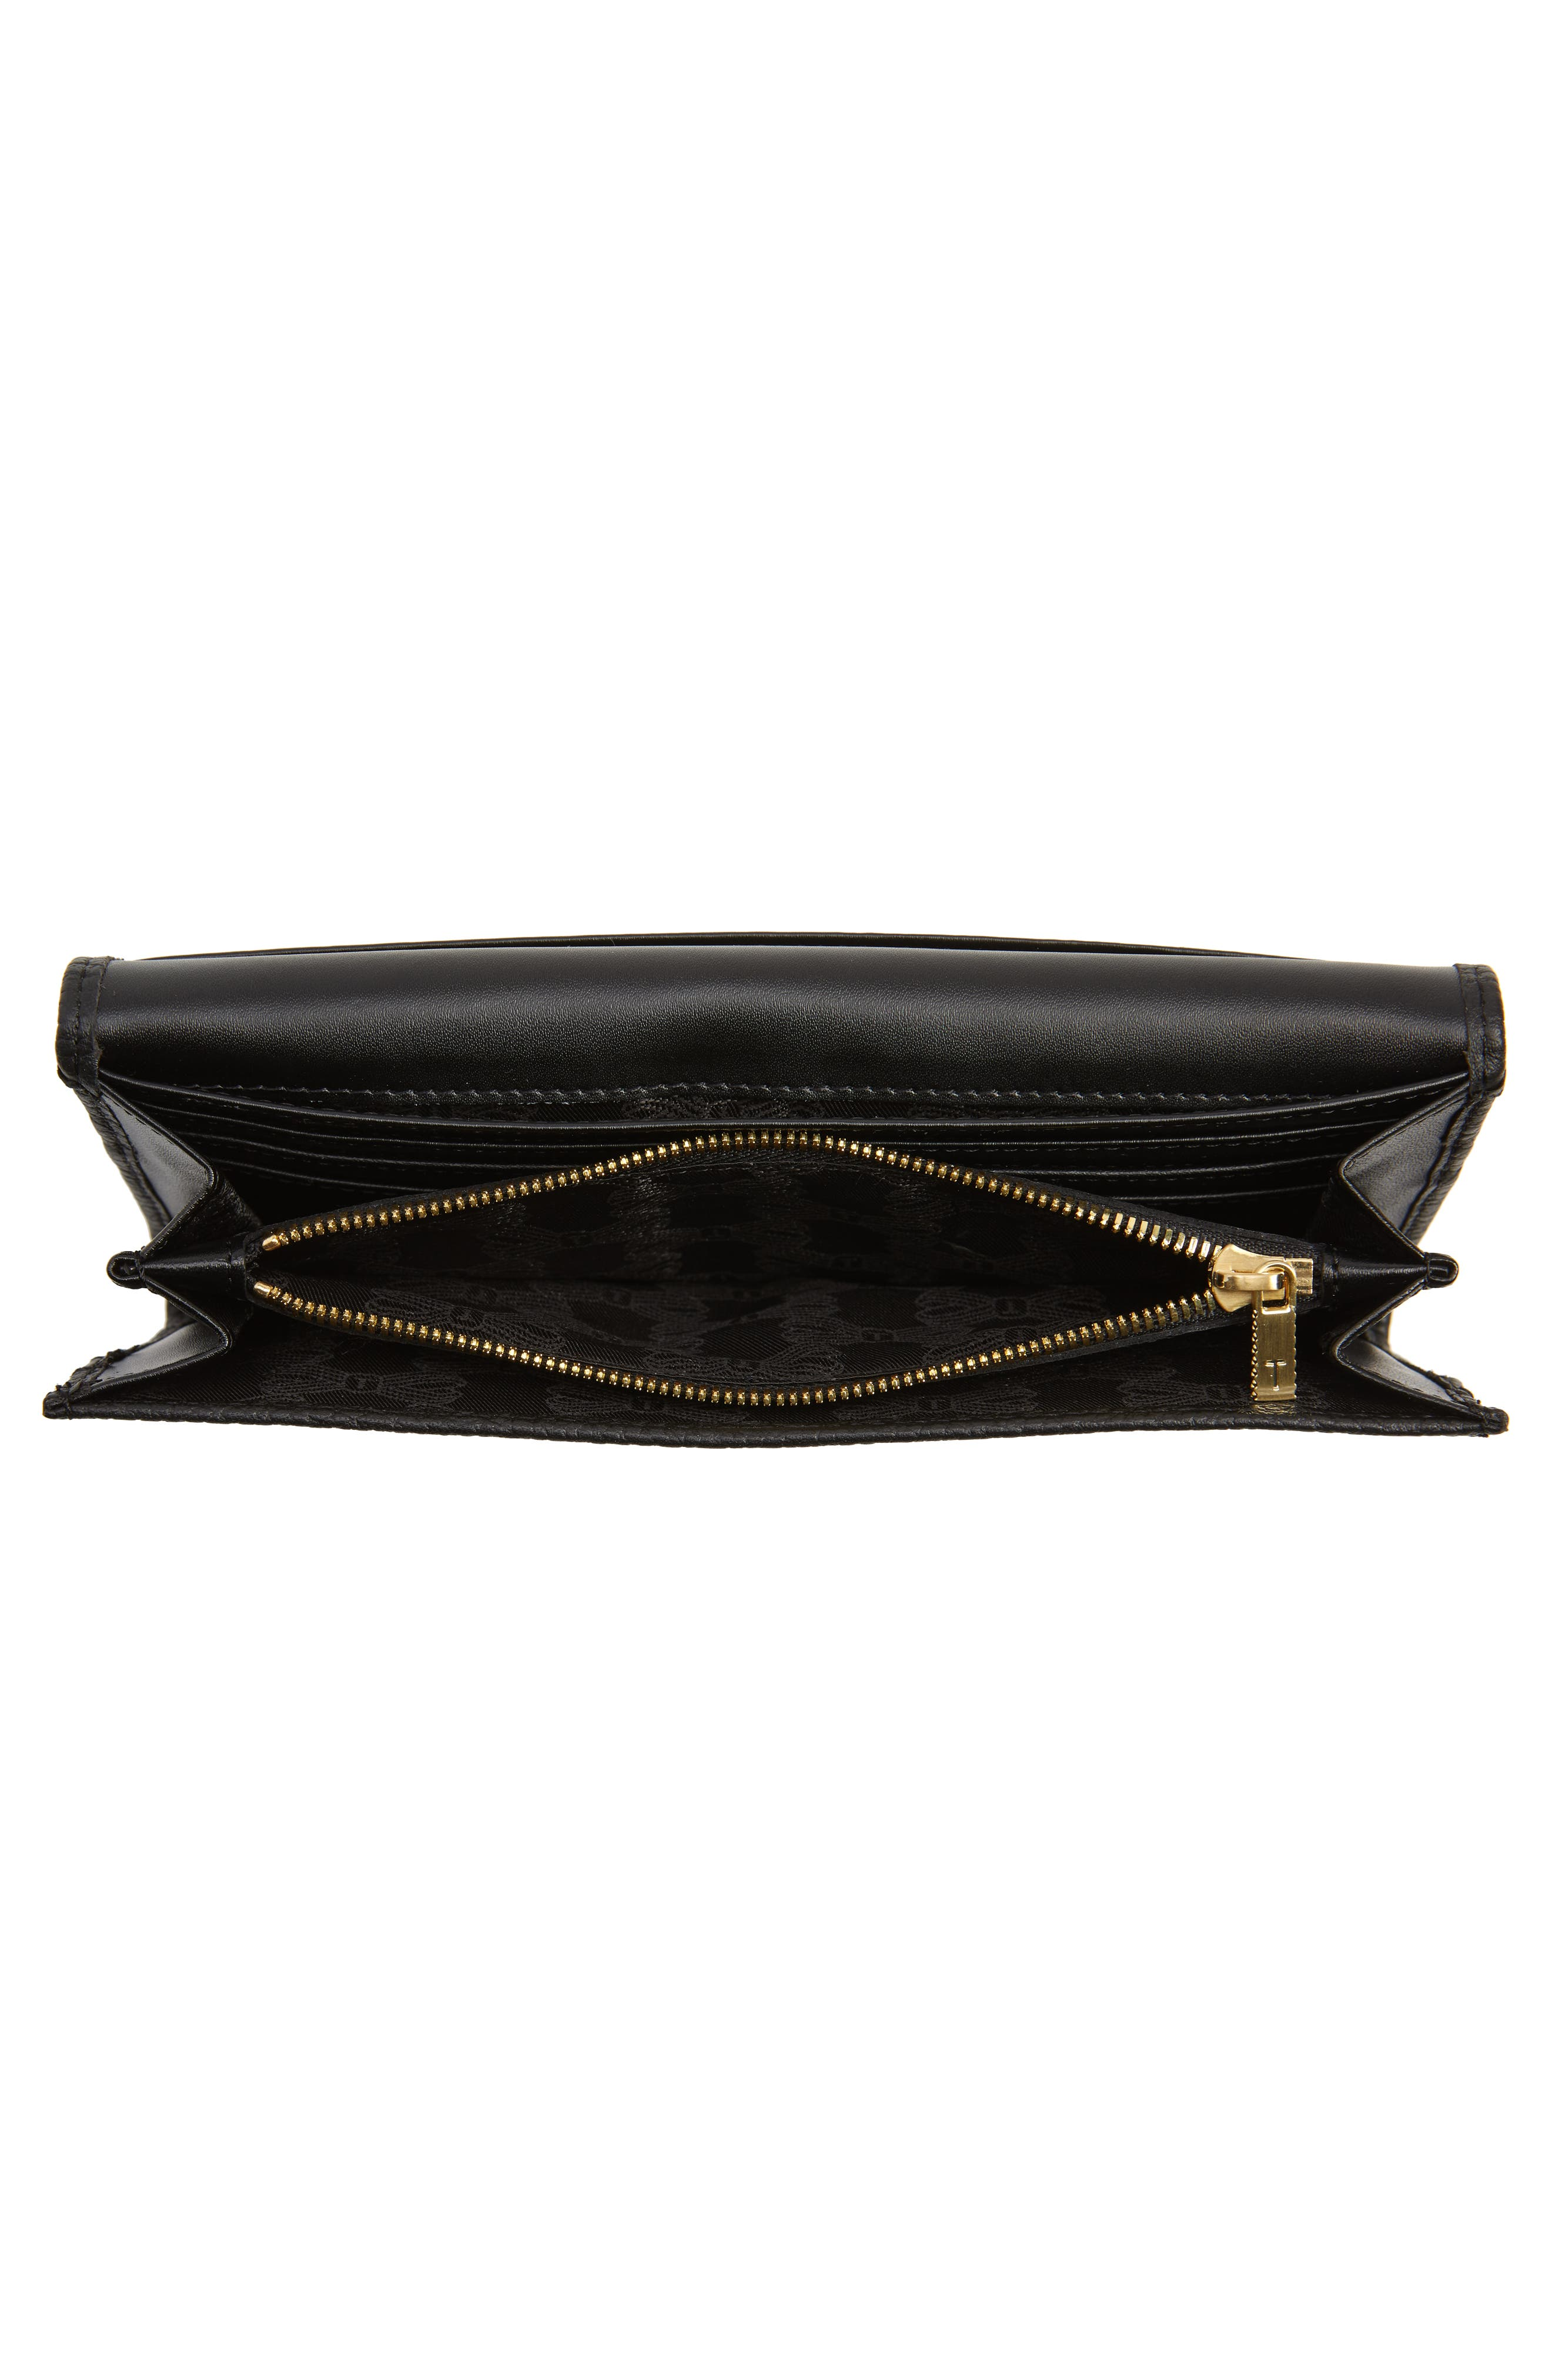 TED BAKER LONDON, Bevv Bow Leather Matinée Wallet, Alternate thumbnail 4, color, BLACK